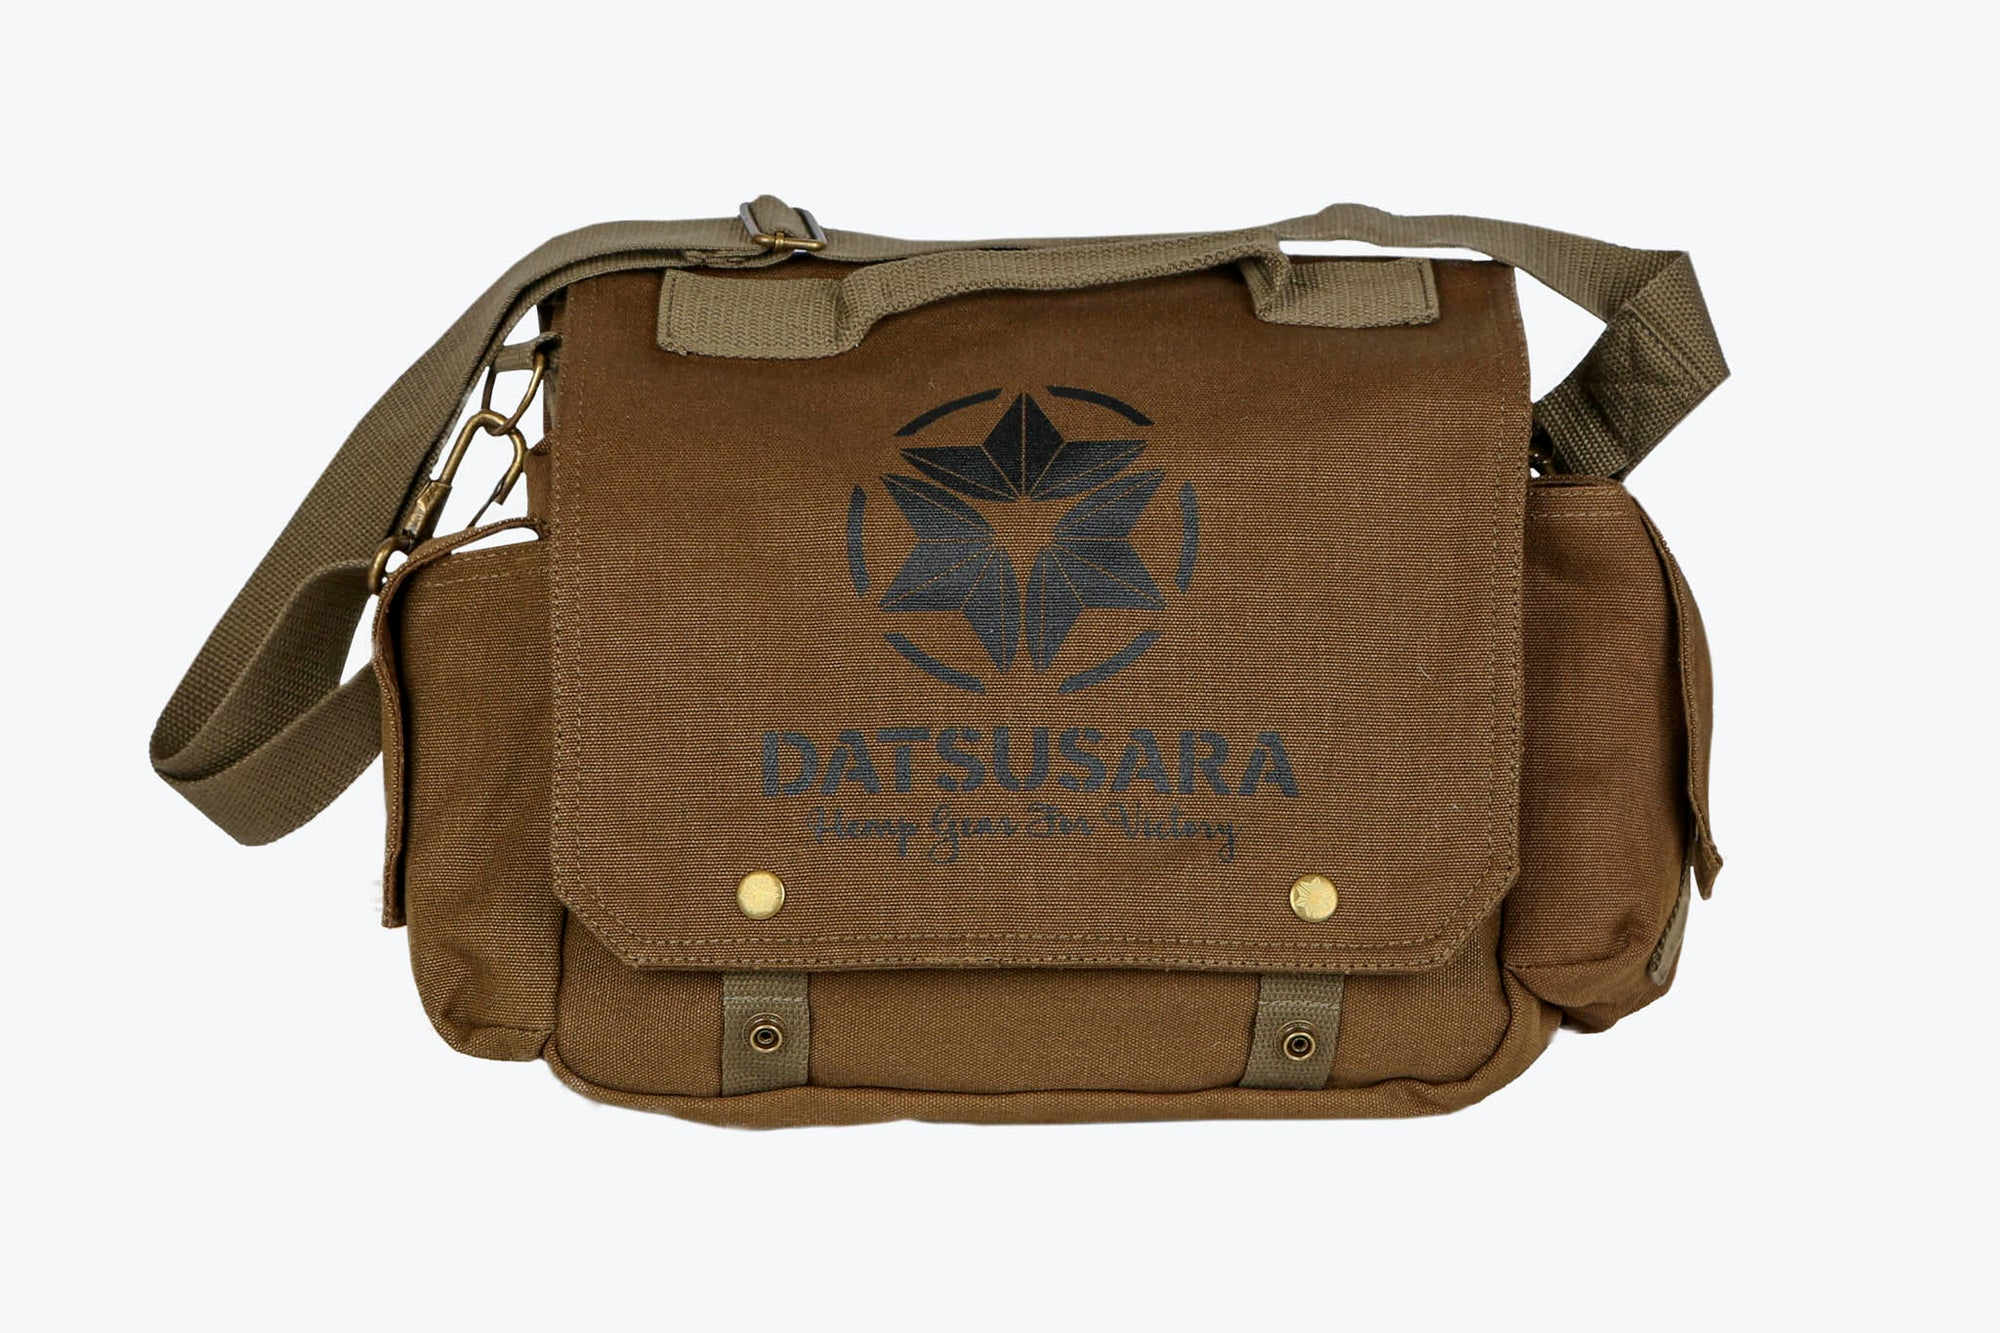 HGFV Messenger Bag